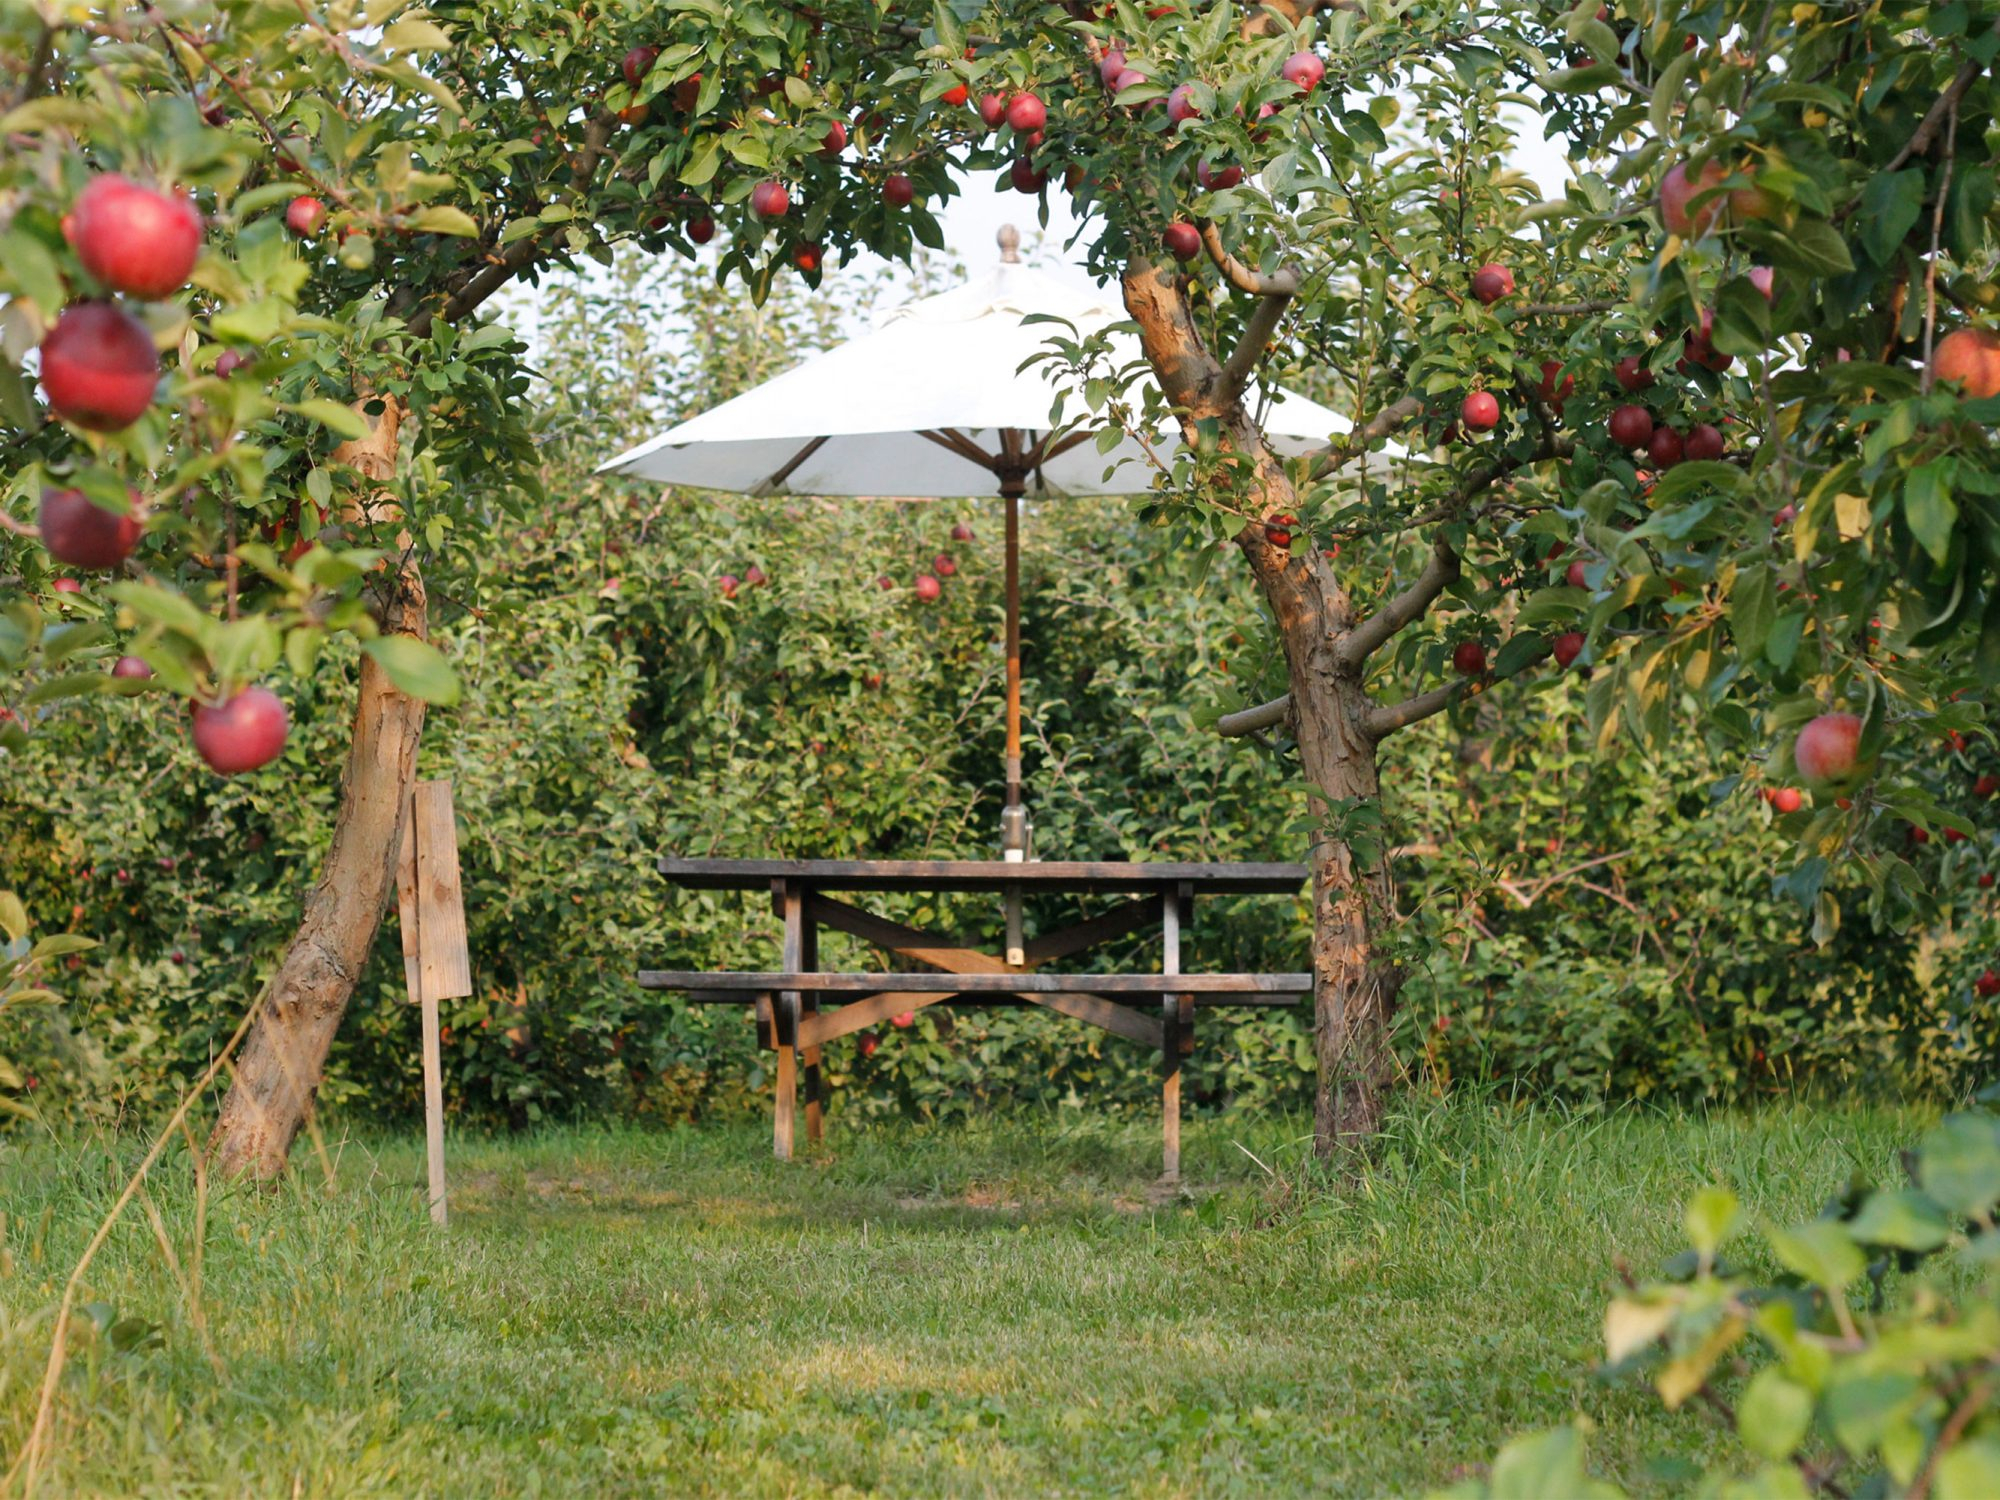 The Best Apple Picking In Every Region Of The U.s (View 10 of 20)